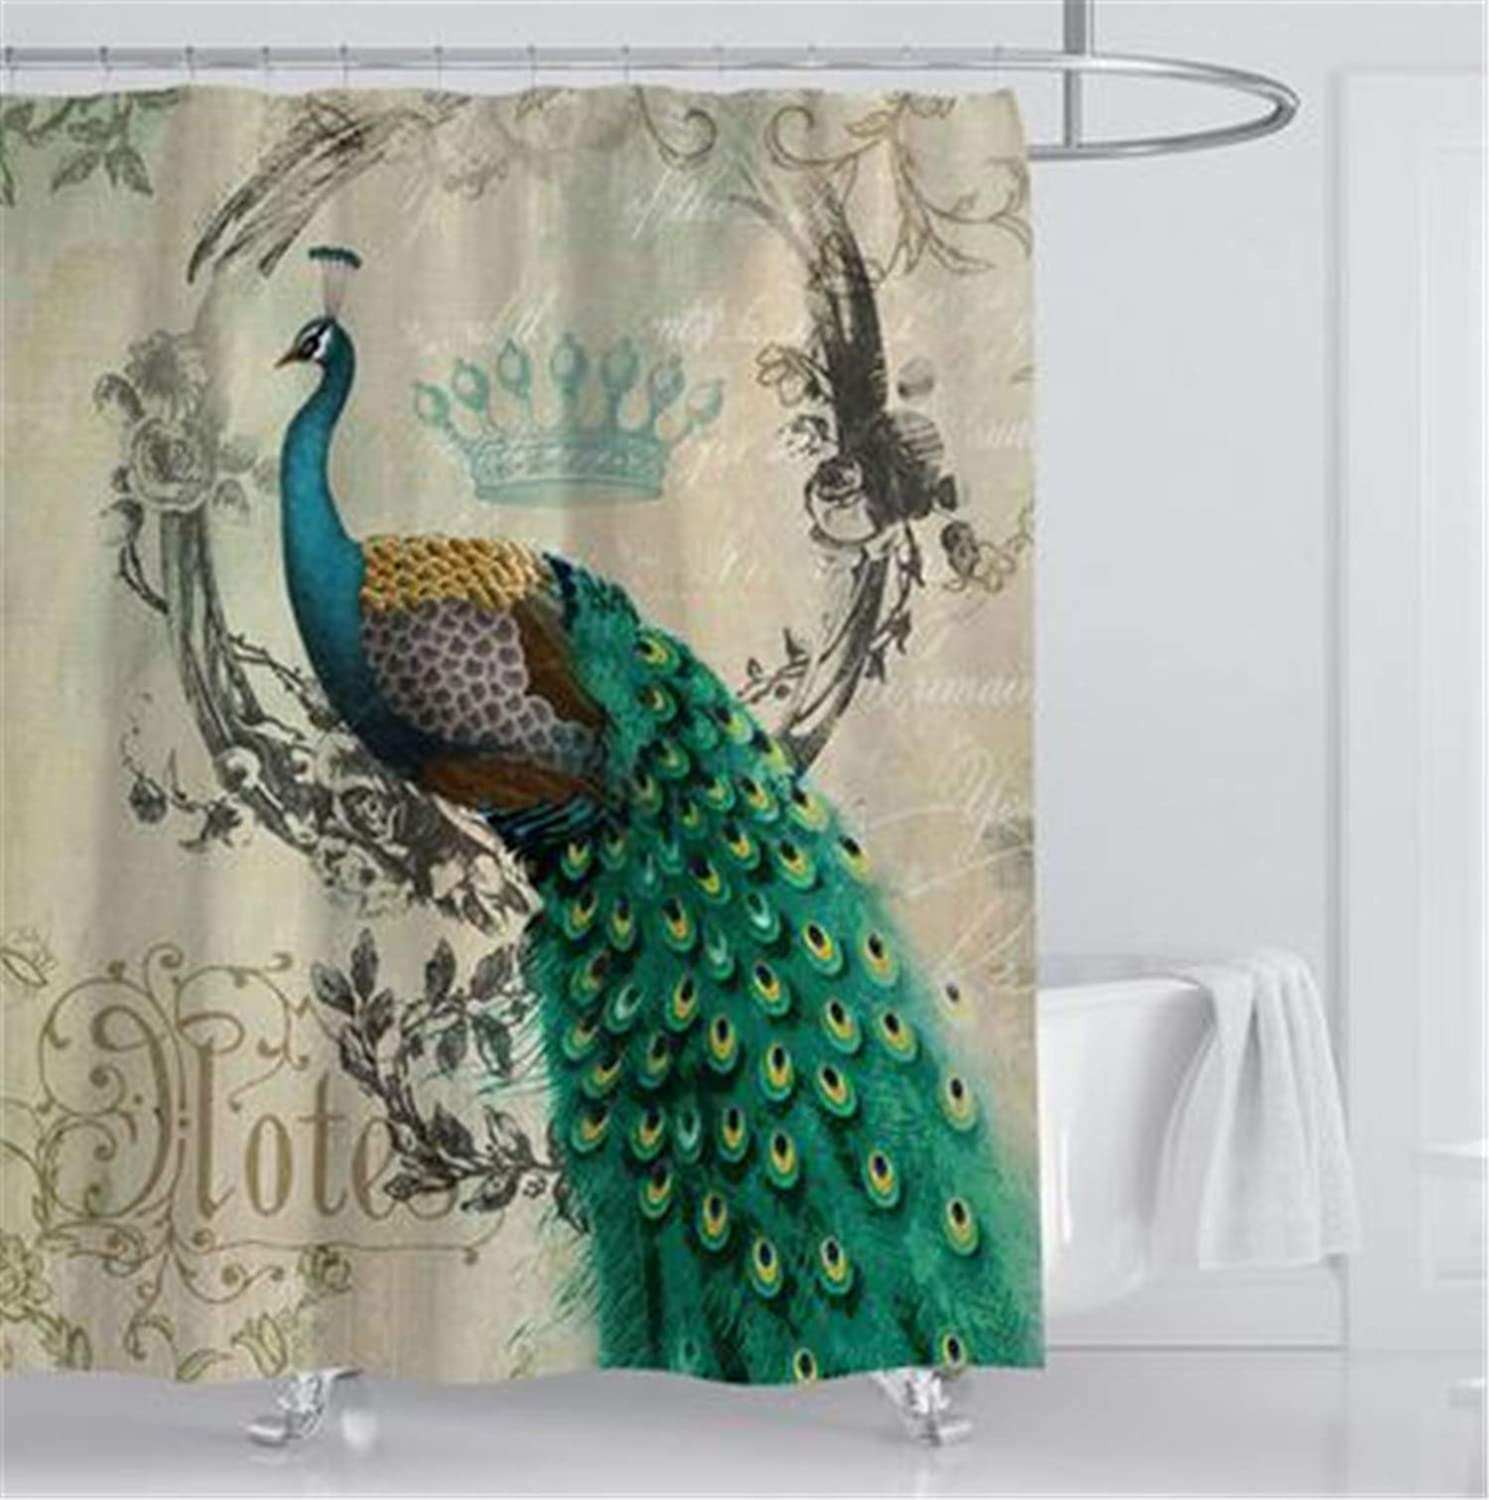 hipaopao Peacock Feathers Flower Vine Vintage Fabric Shower Curtain Sets Bathroom Decor with Hooks Waterproof